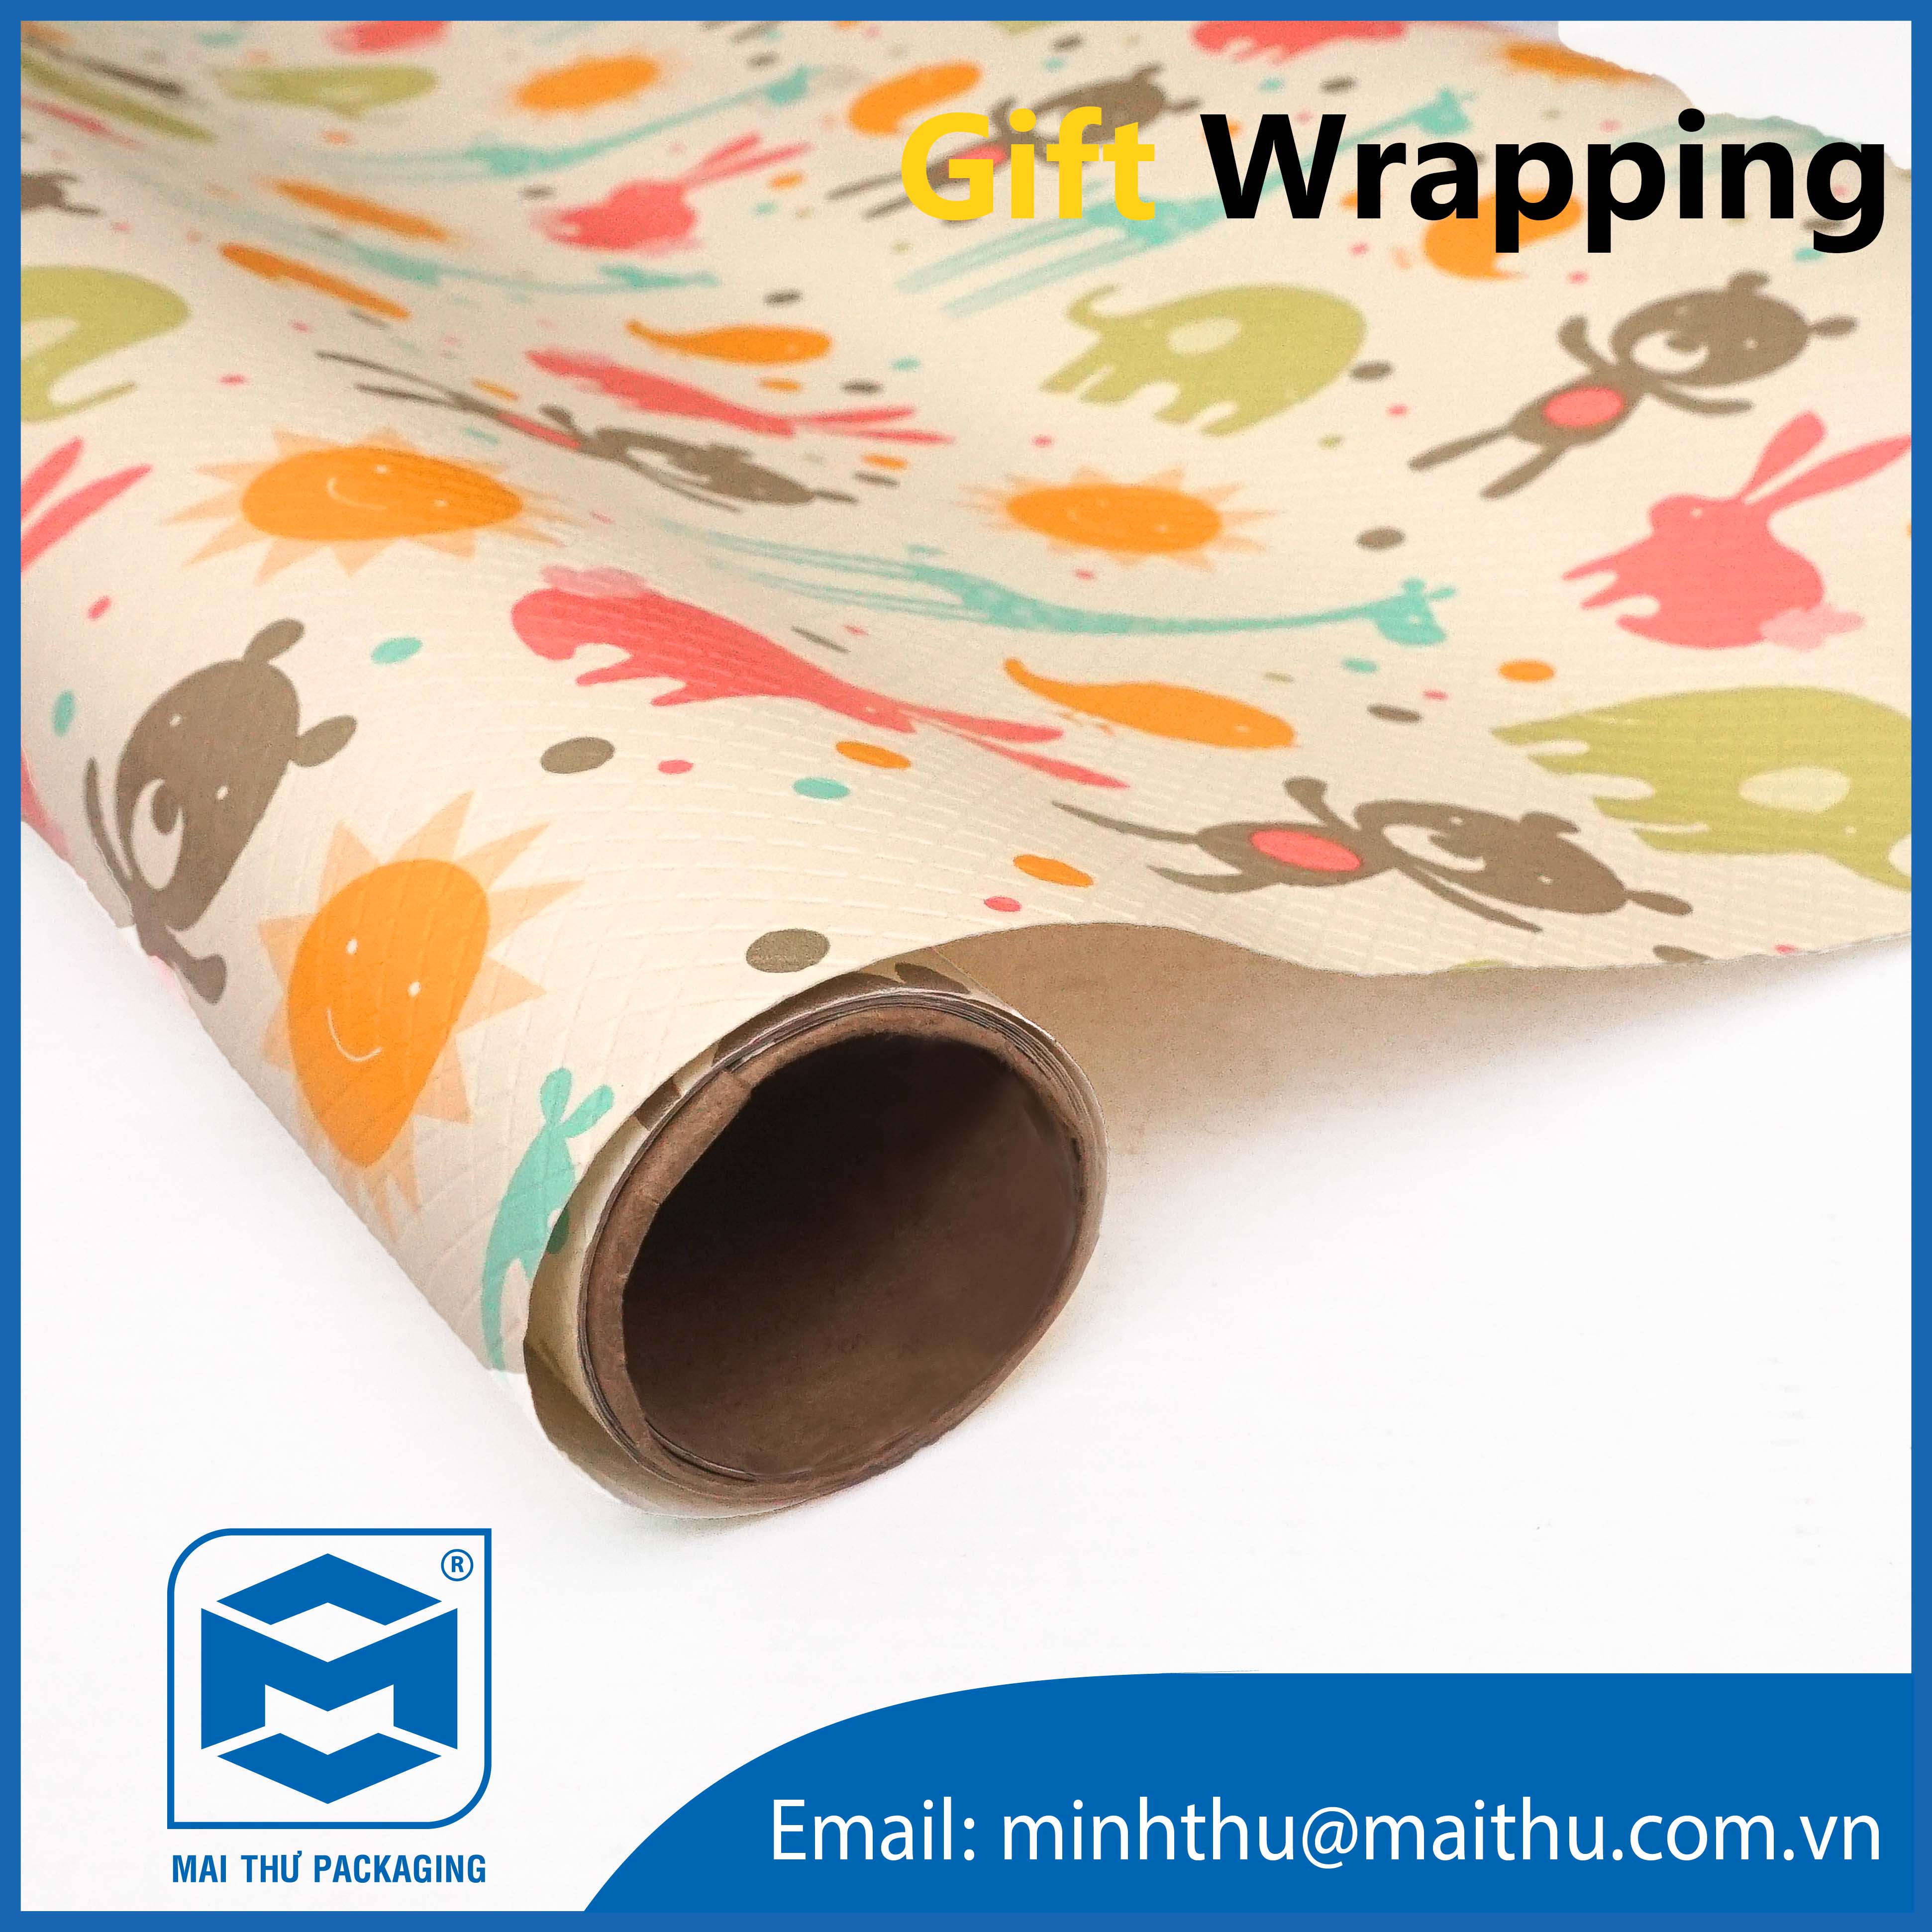 Gift Wrapping - 6